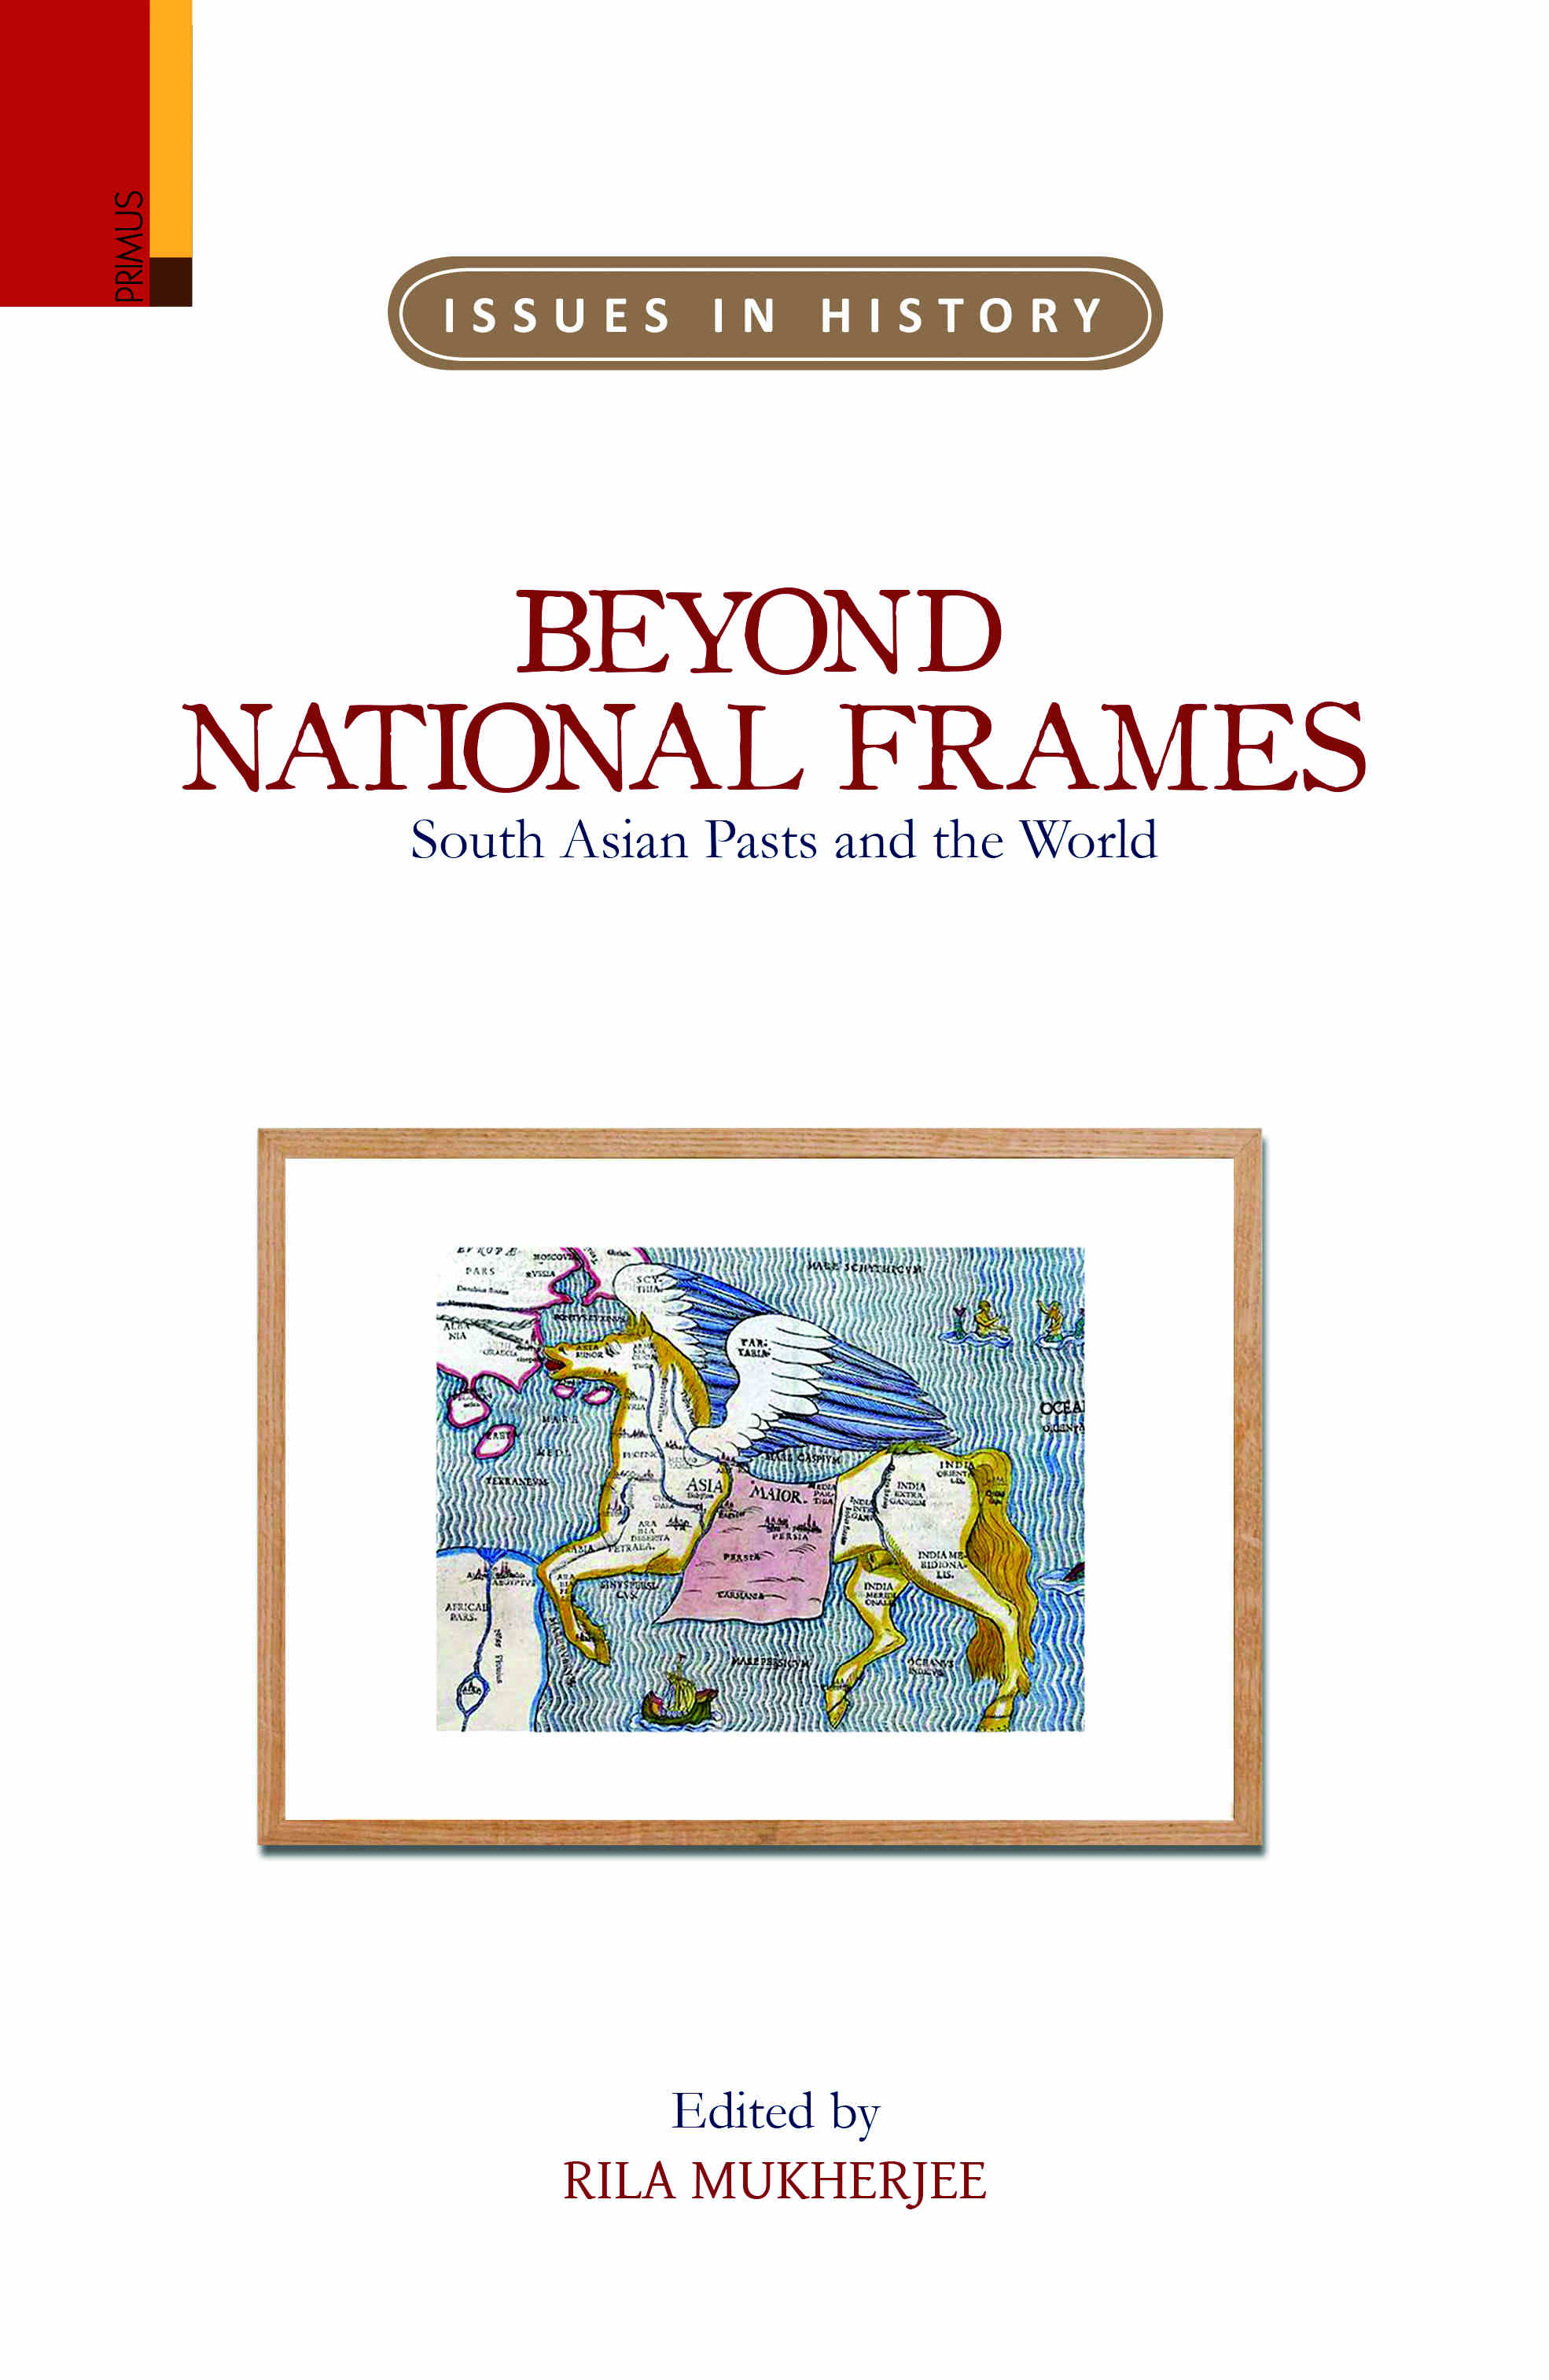 Beyond National Frames